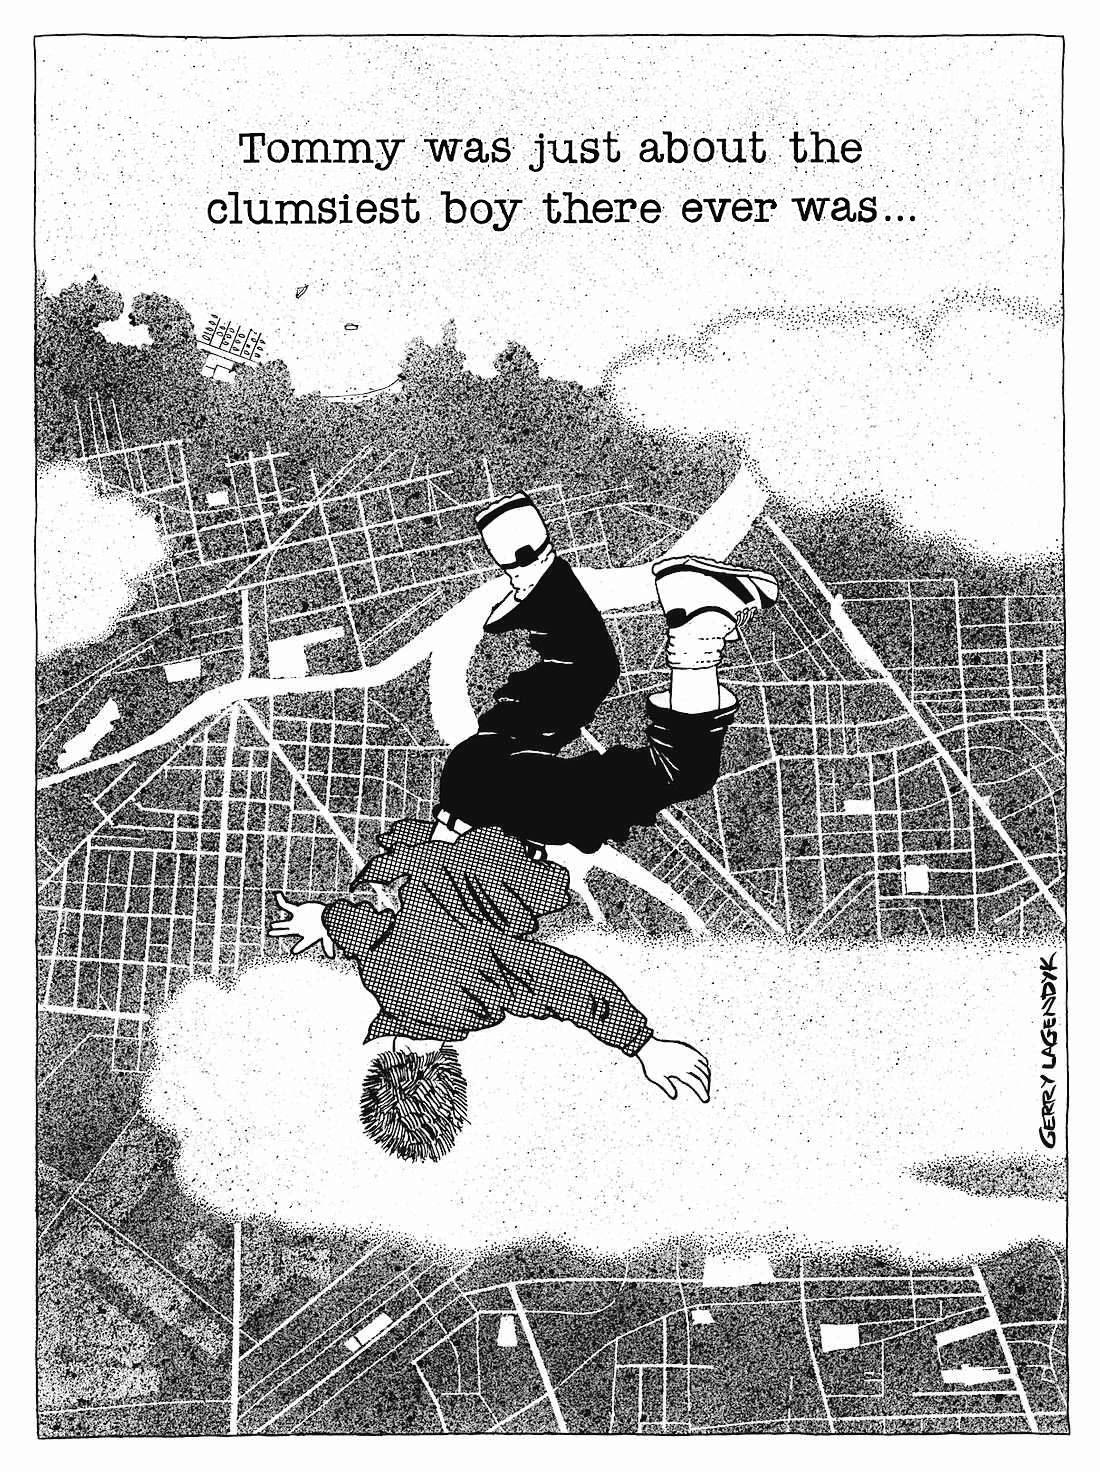 Clumsy Boy cartoon, Gerry Lagendyk, falling from sky